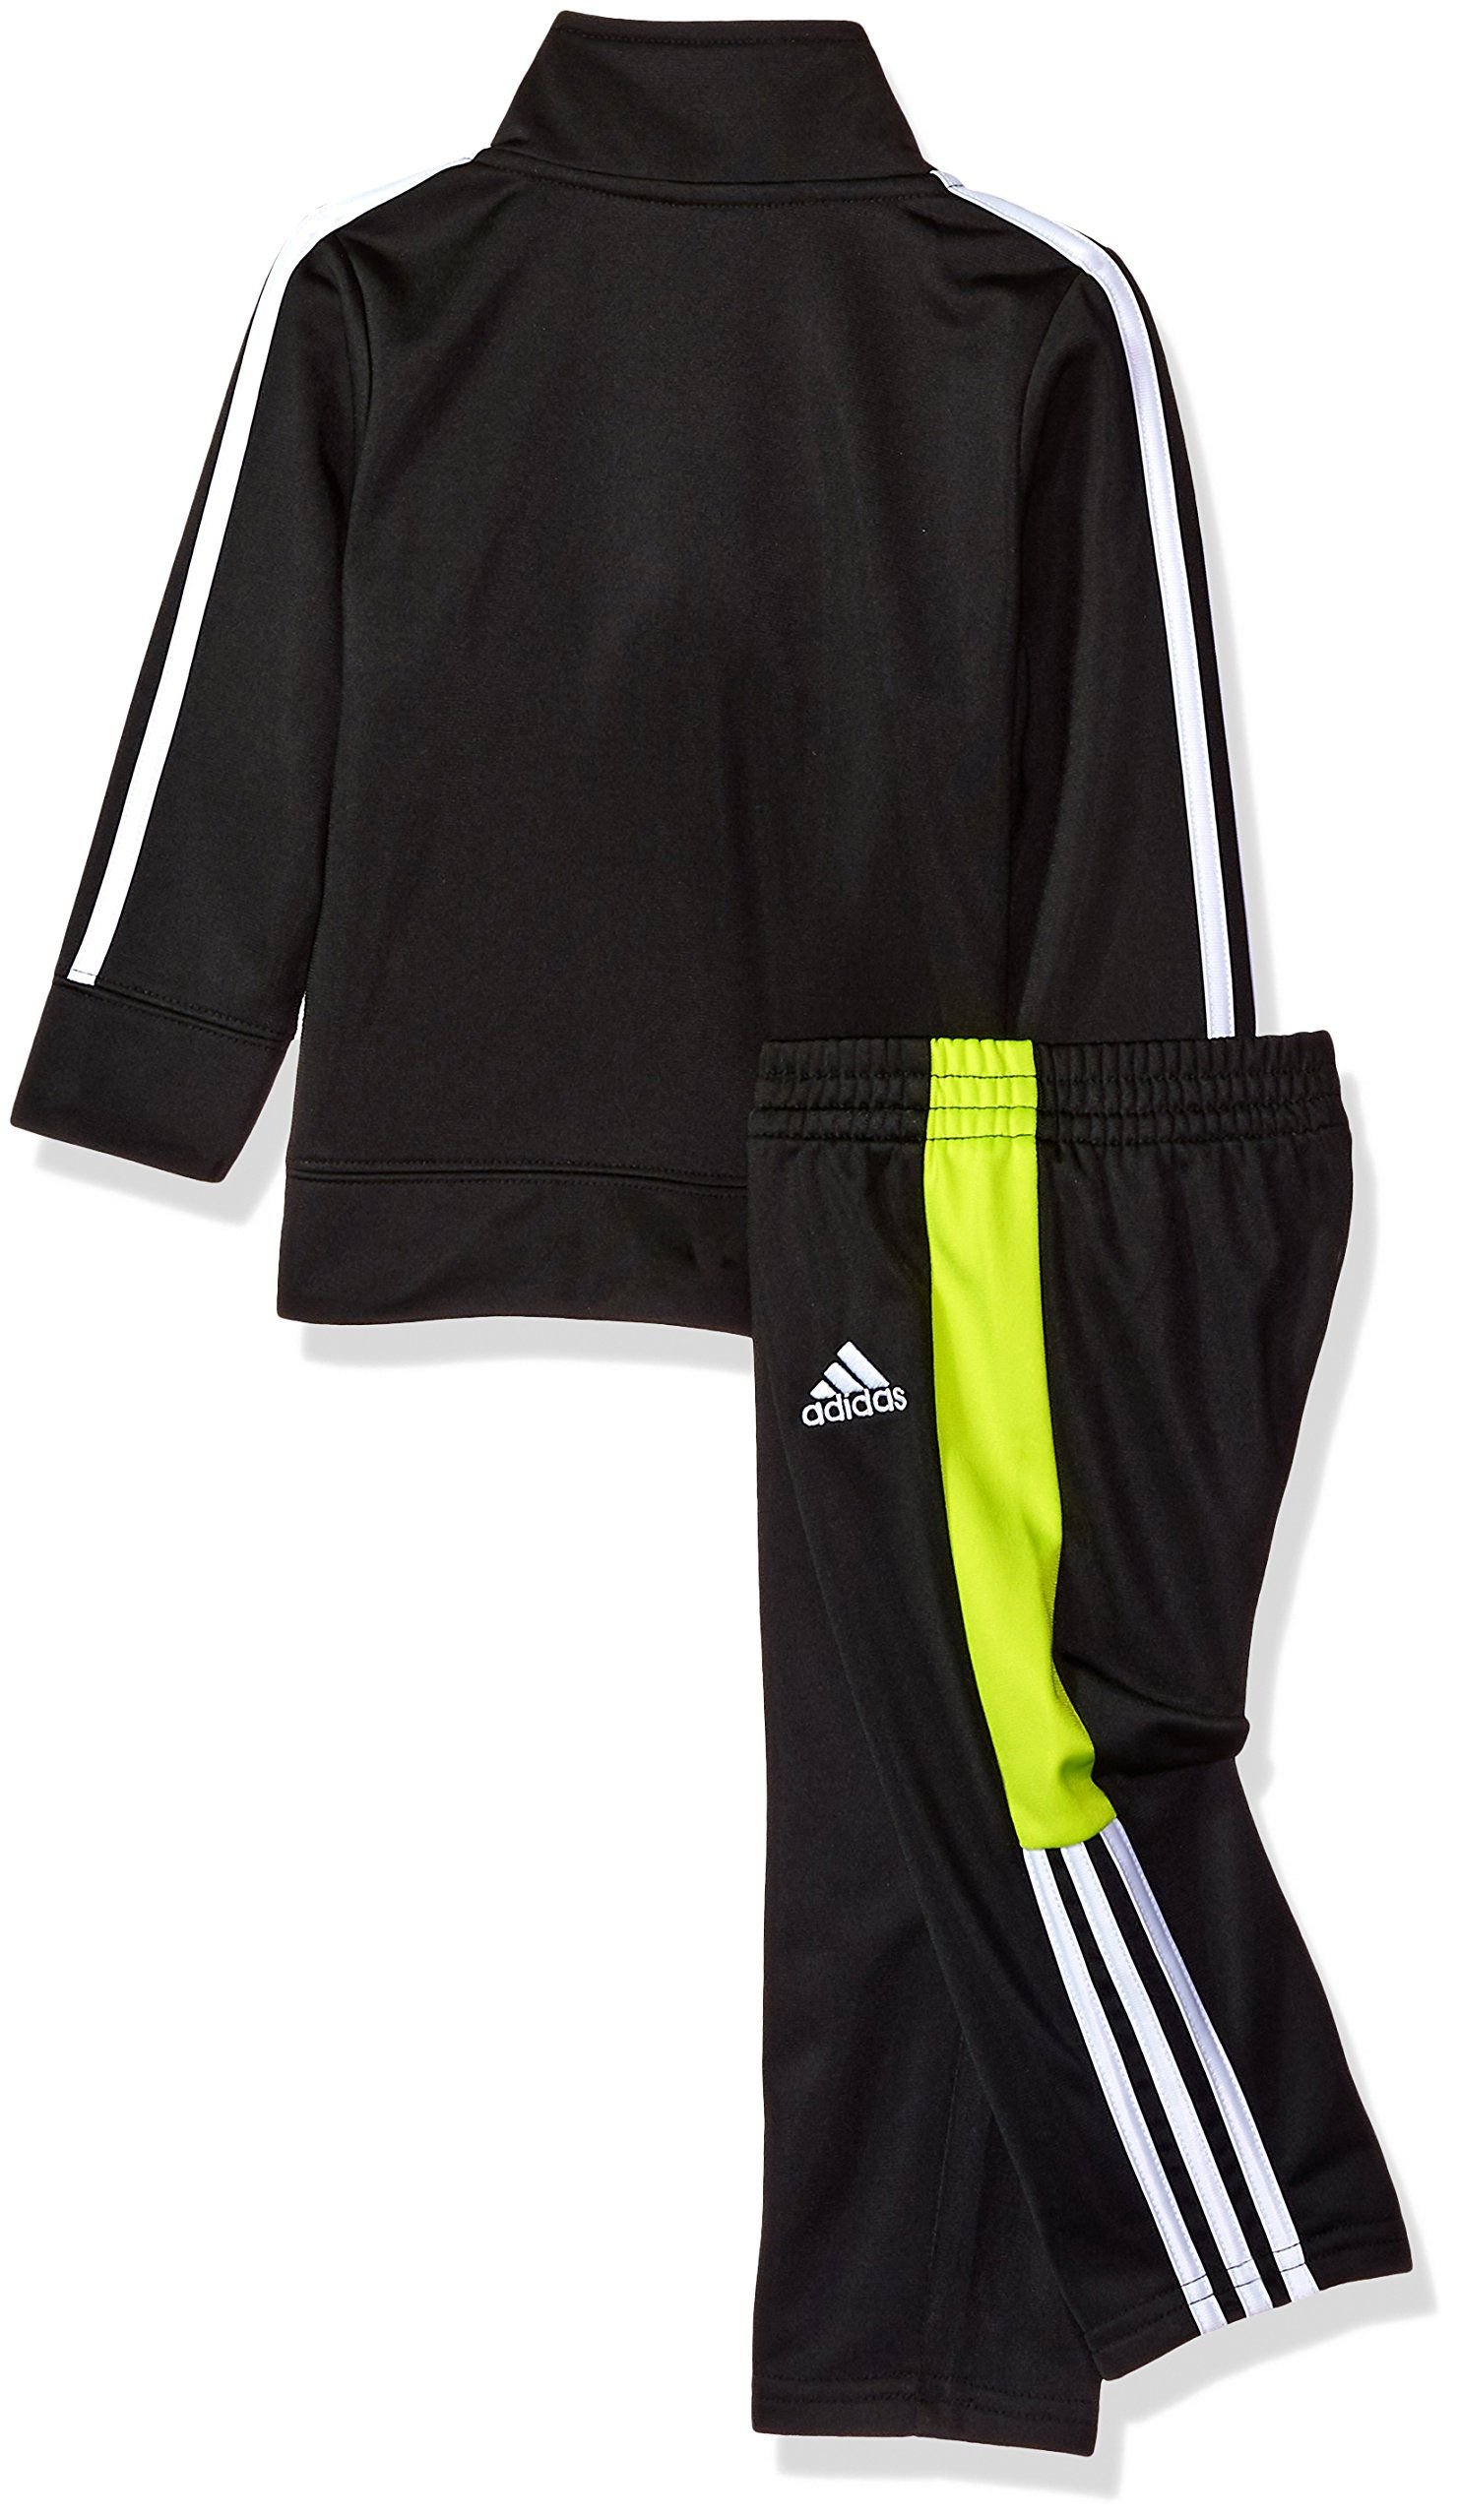 23f2c161b adidas Baby Boys Colorblock Tricot Tracksuit 2Piece Set Black/Neon 3 Months  ** Information can be discovered by clicking the photo.